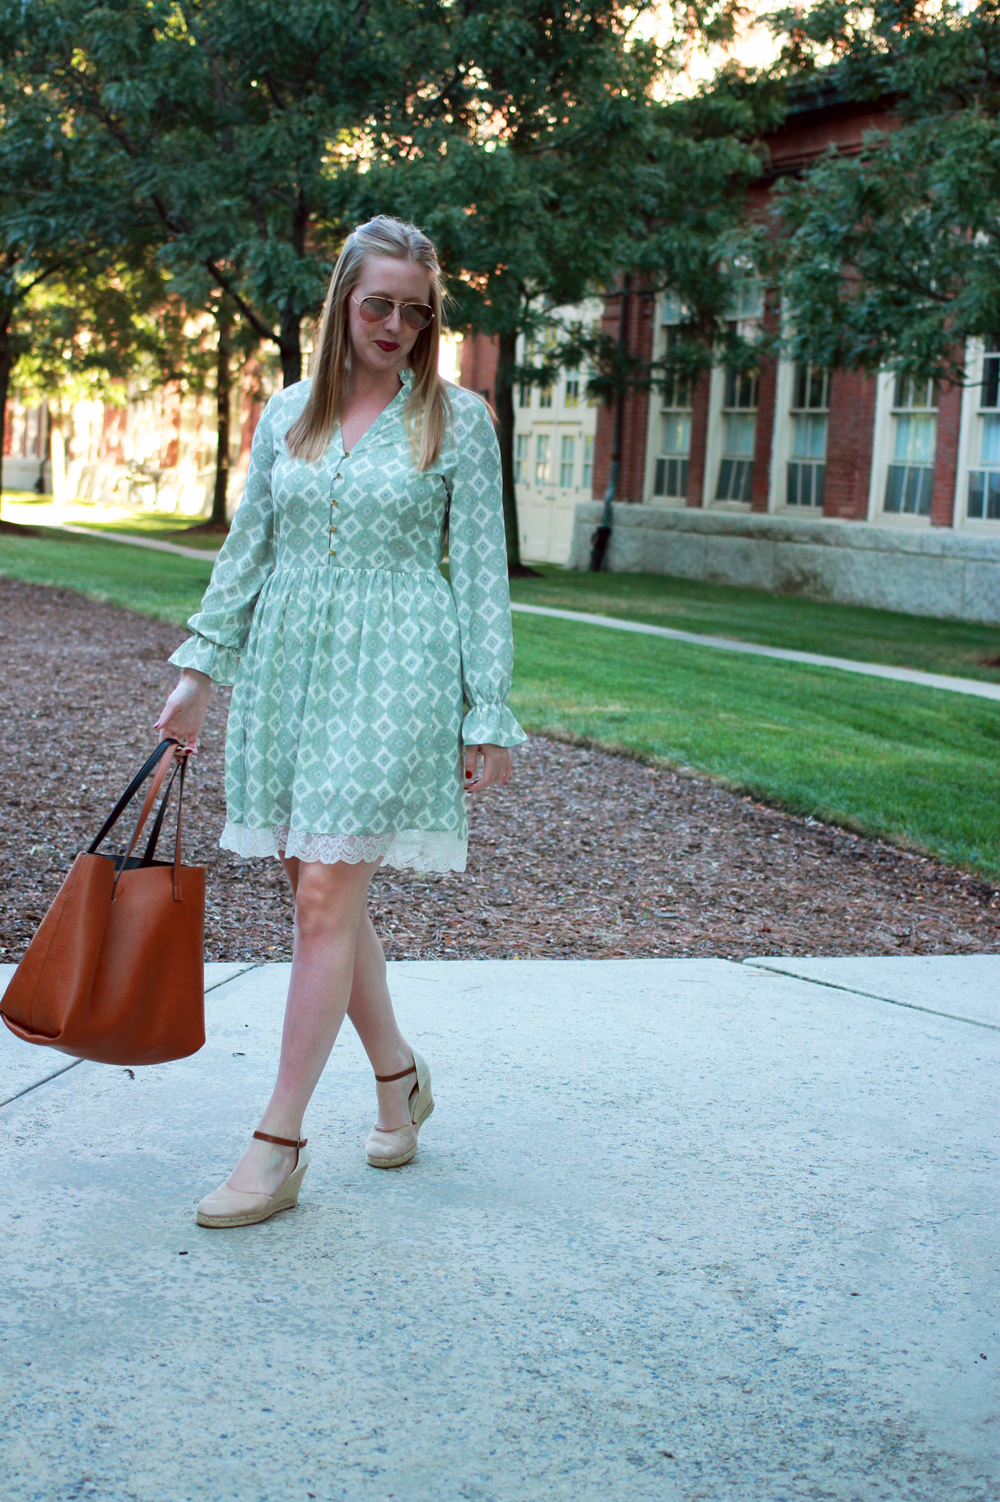 highline collective medallion peasant dress, peasant dress, boston style blogger, boston fashion blogger, boston blogger summer, lord and taylor dresses, highline collective dresses,